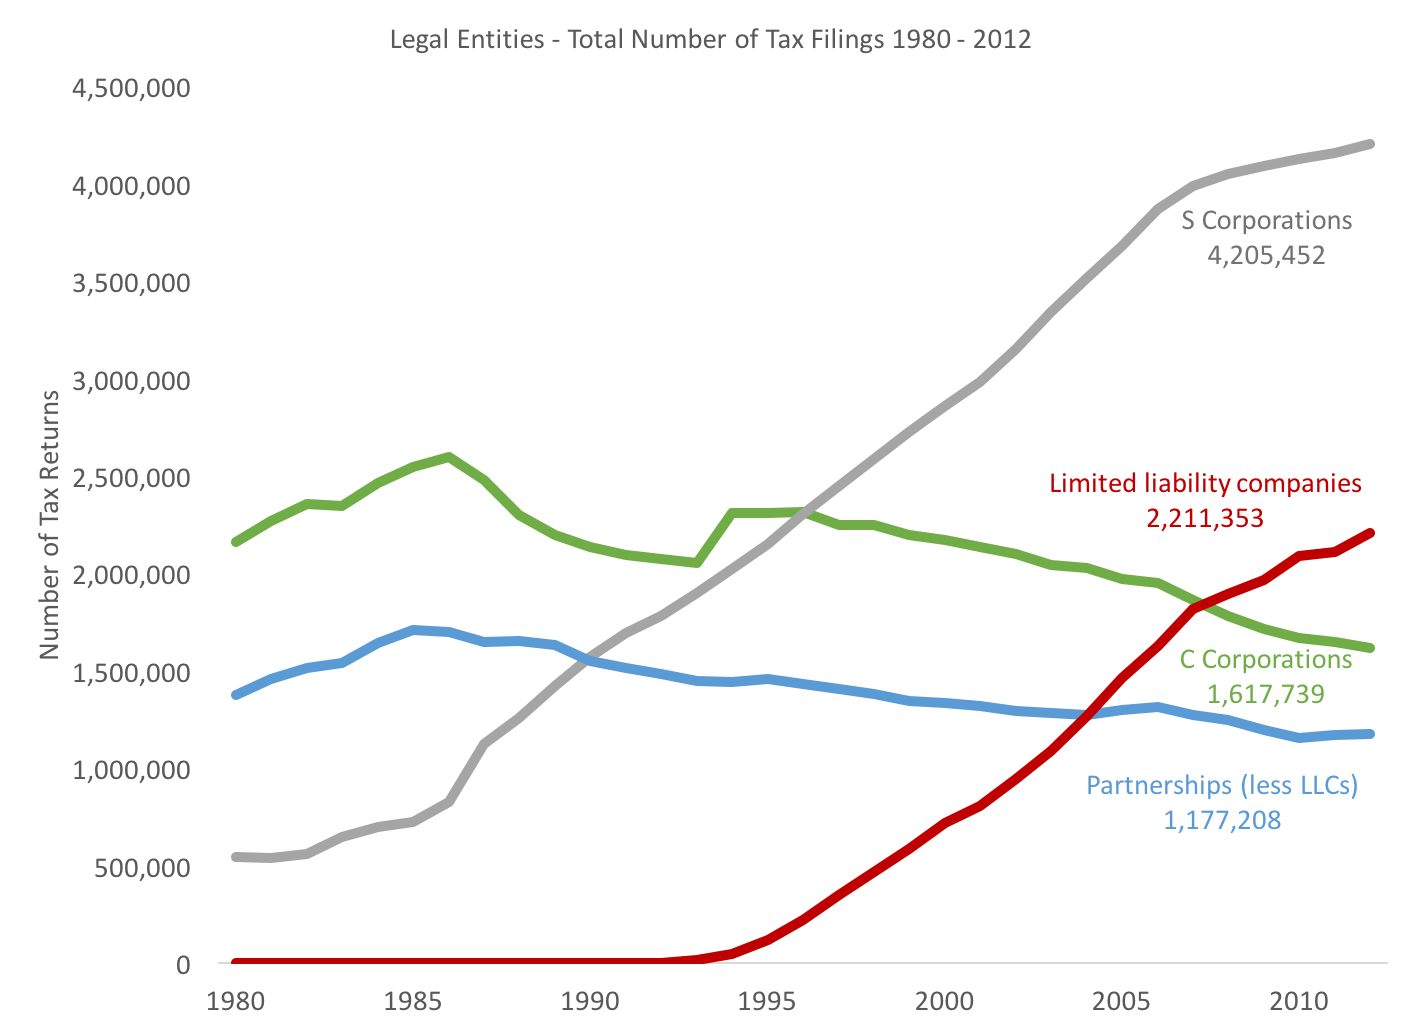 Total number of business tax returns filed by legal entity type from 1980 - 2012. Showing S Corporations, Limited Liability Companies, C Corporations, and Partnerships (ex-LLCs).